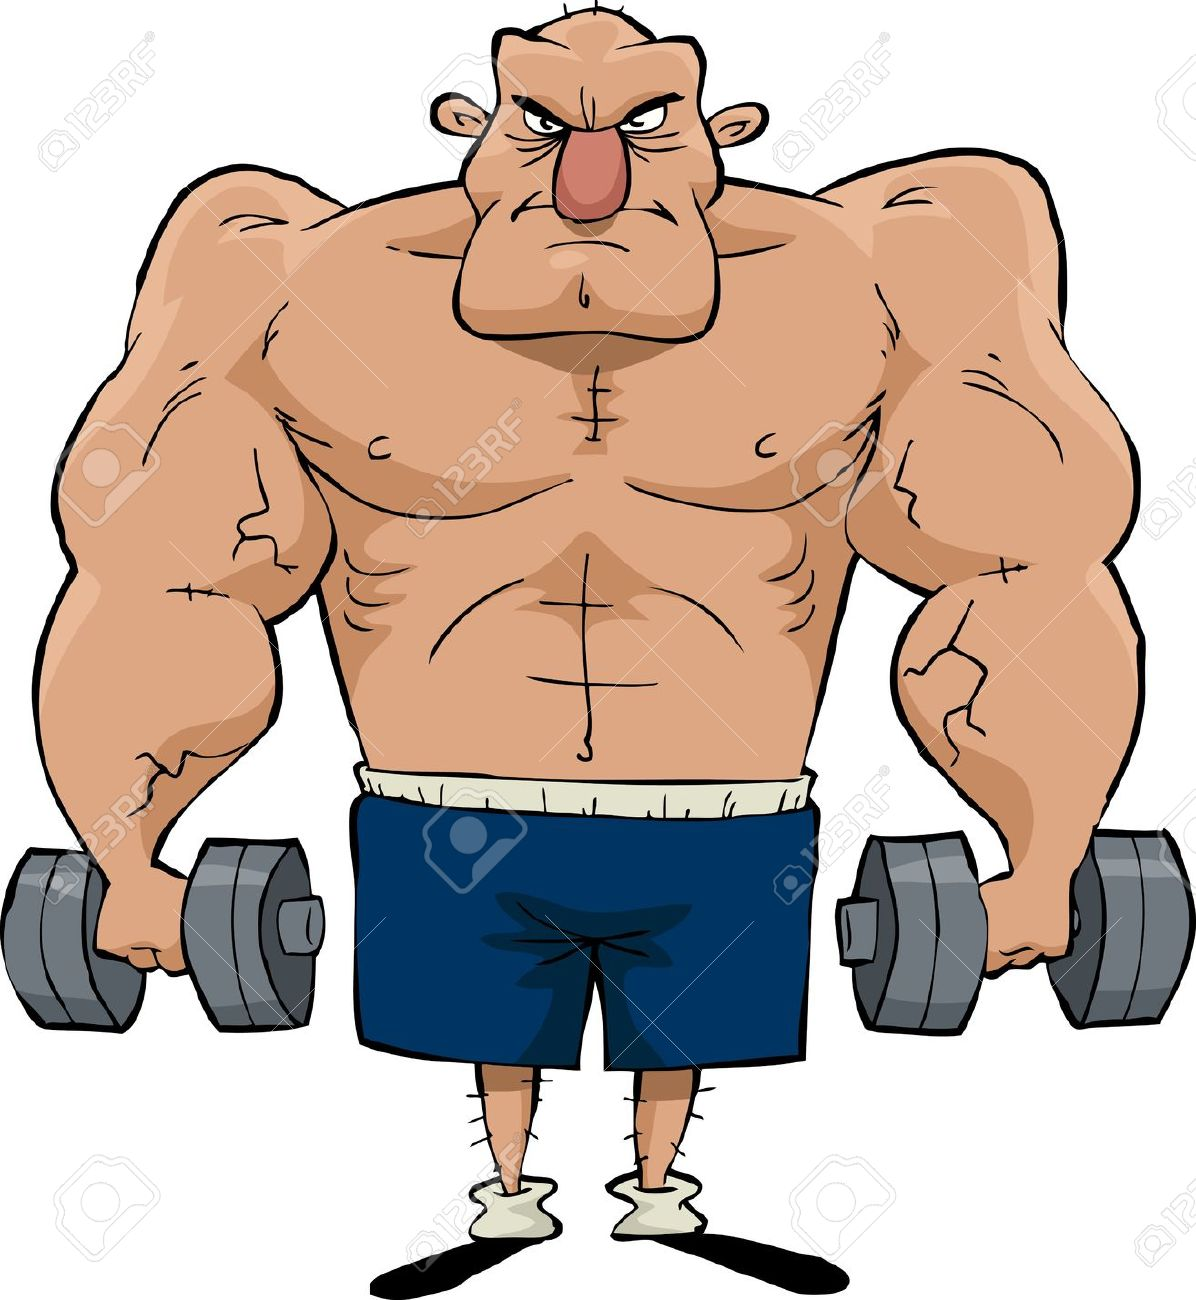 Muscle Clip Art . muscle man: Big man with .